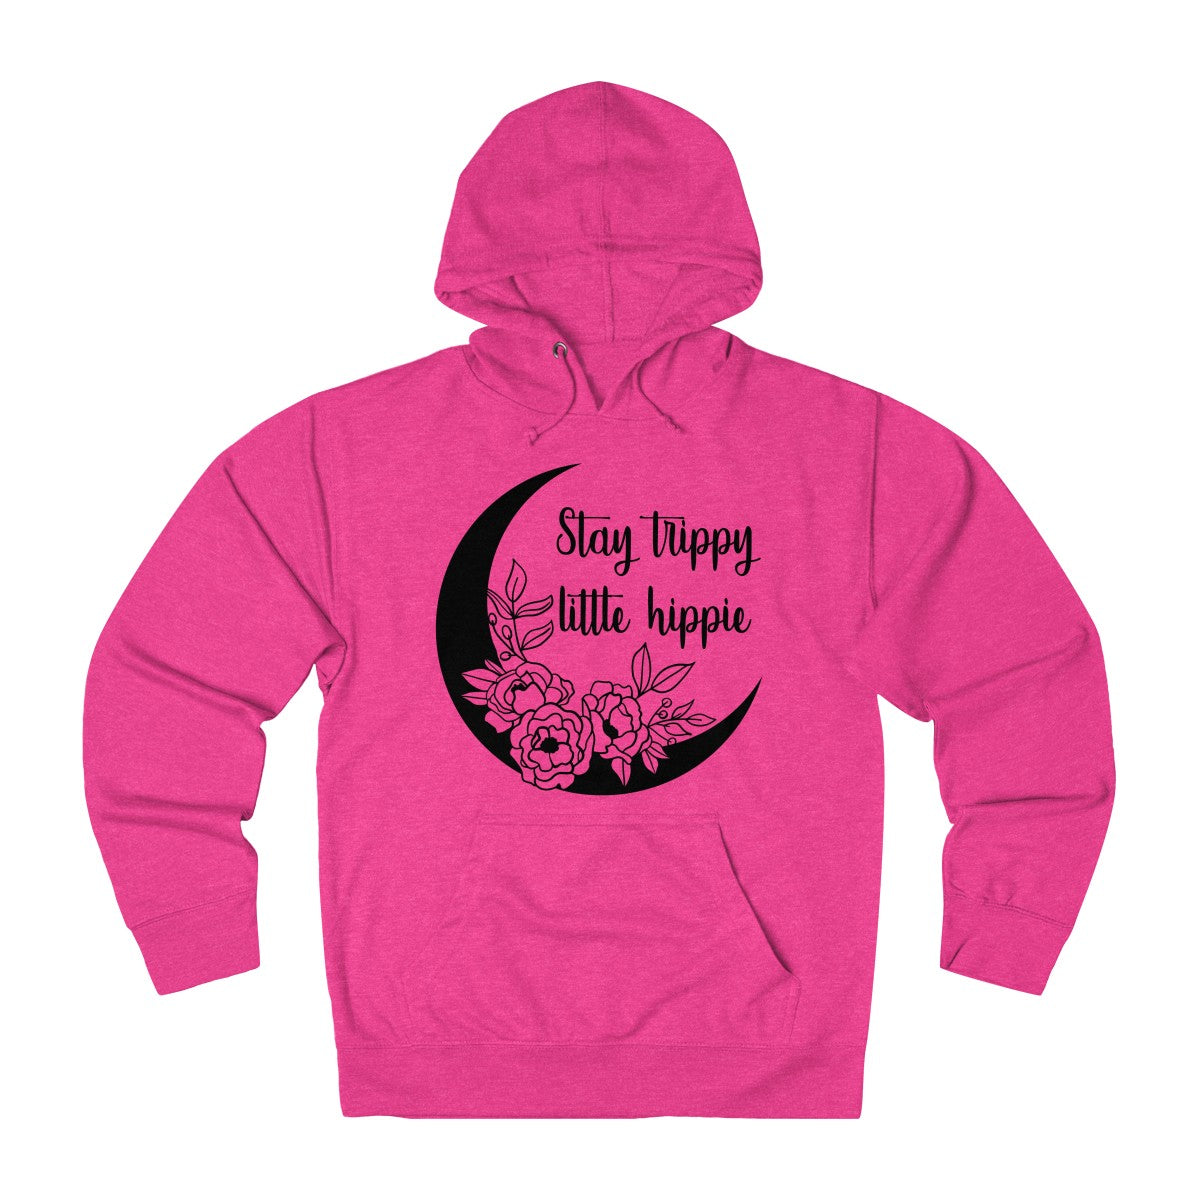 Stay Trippy Little Hippie Hoodie